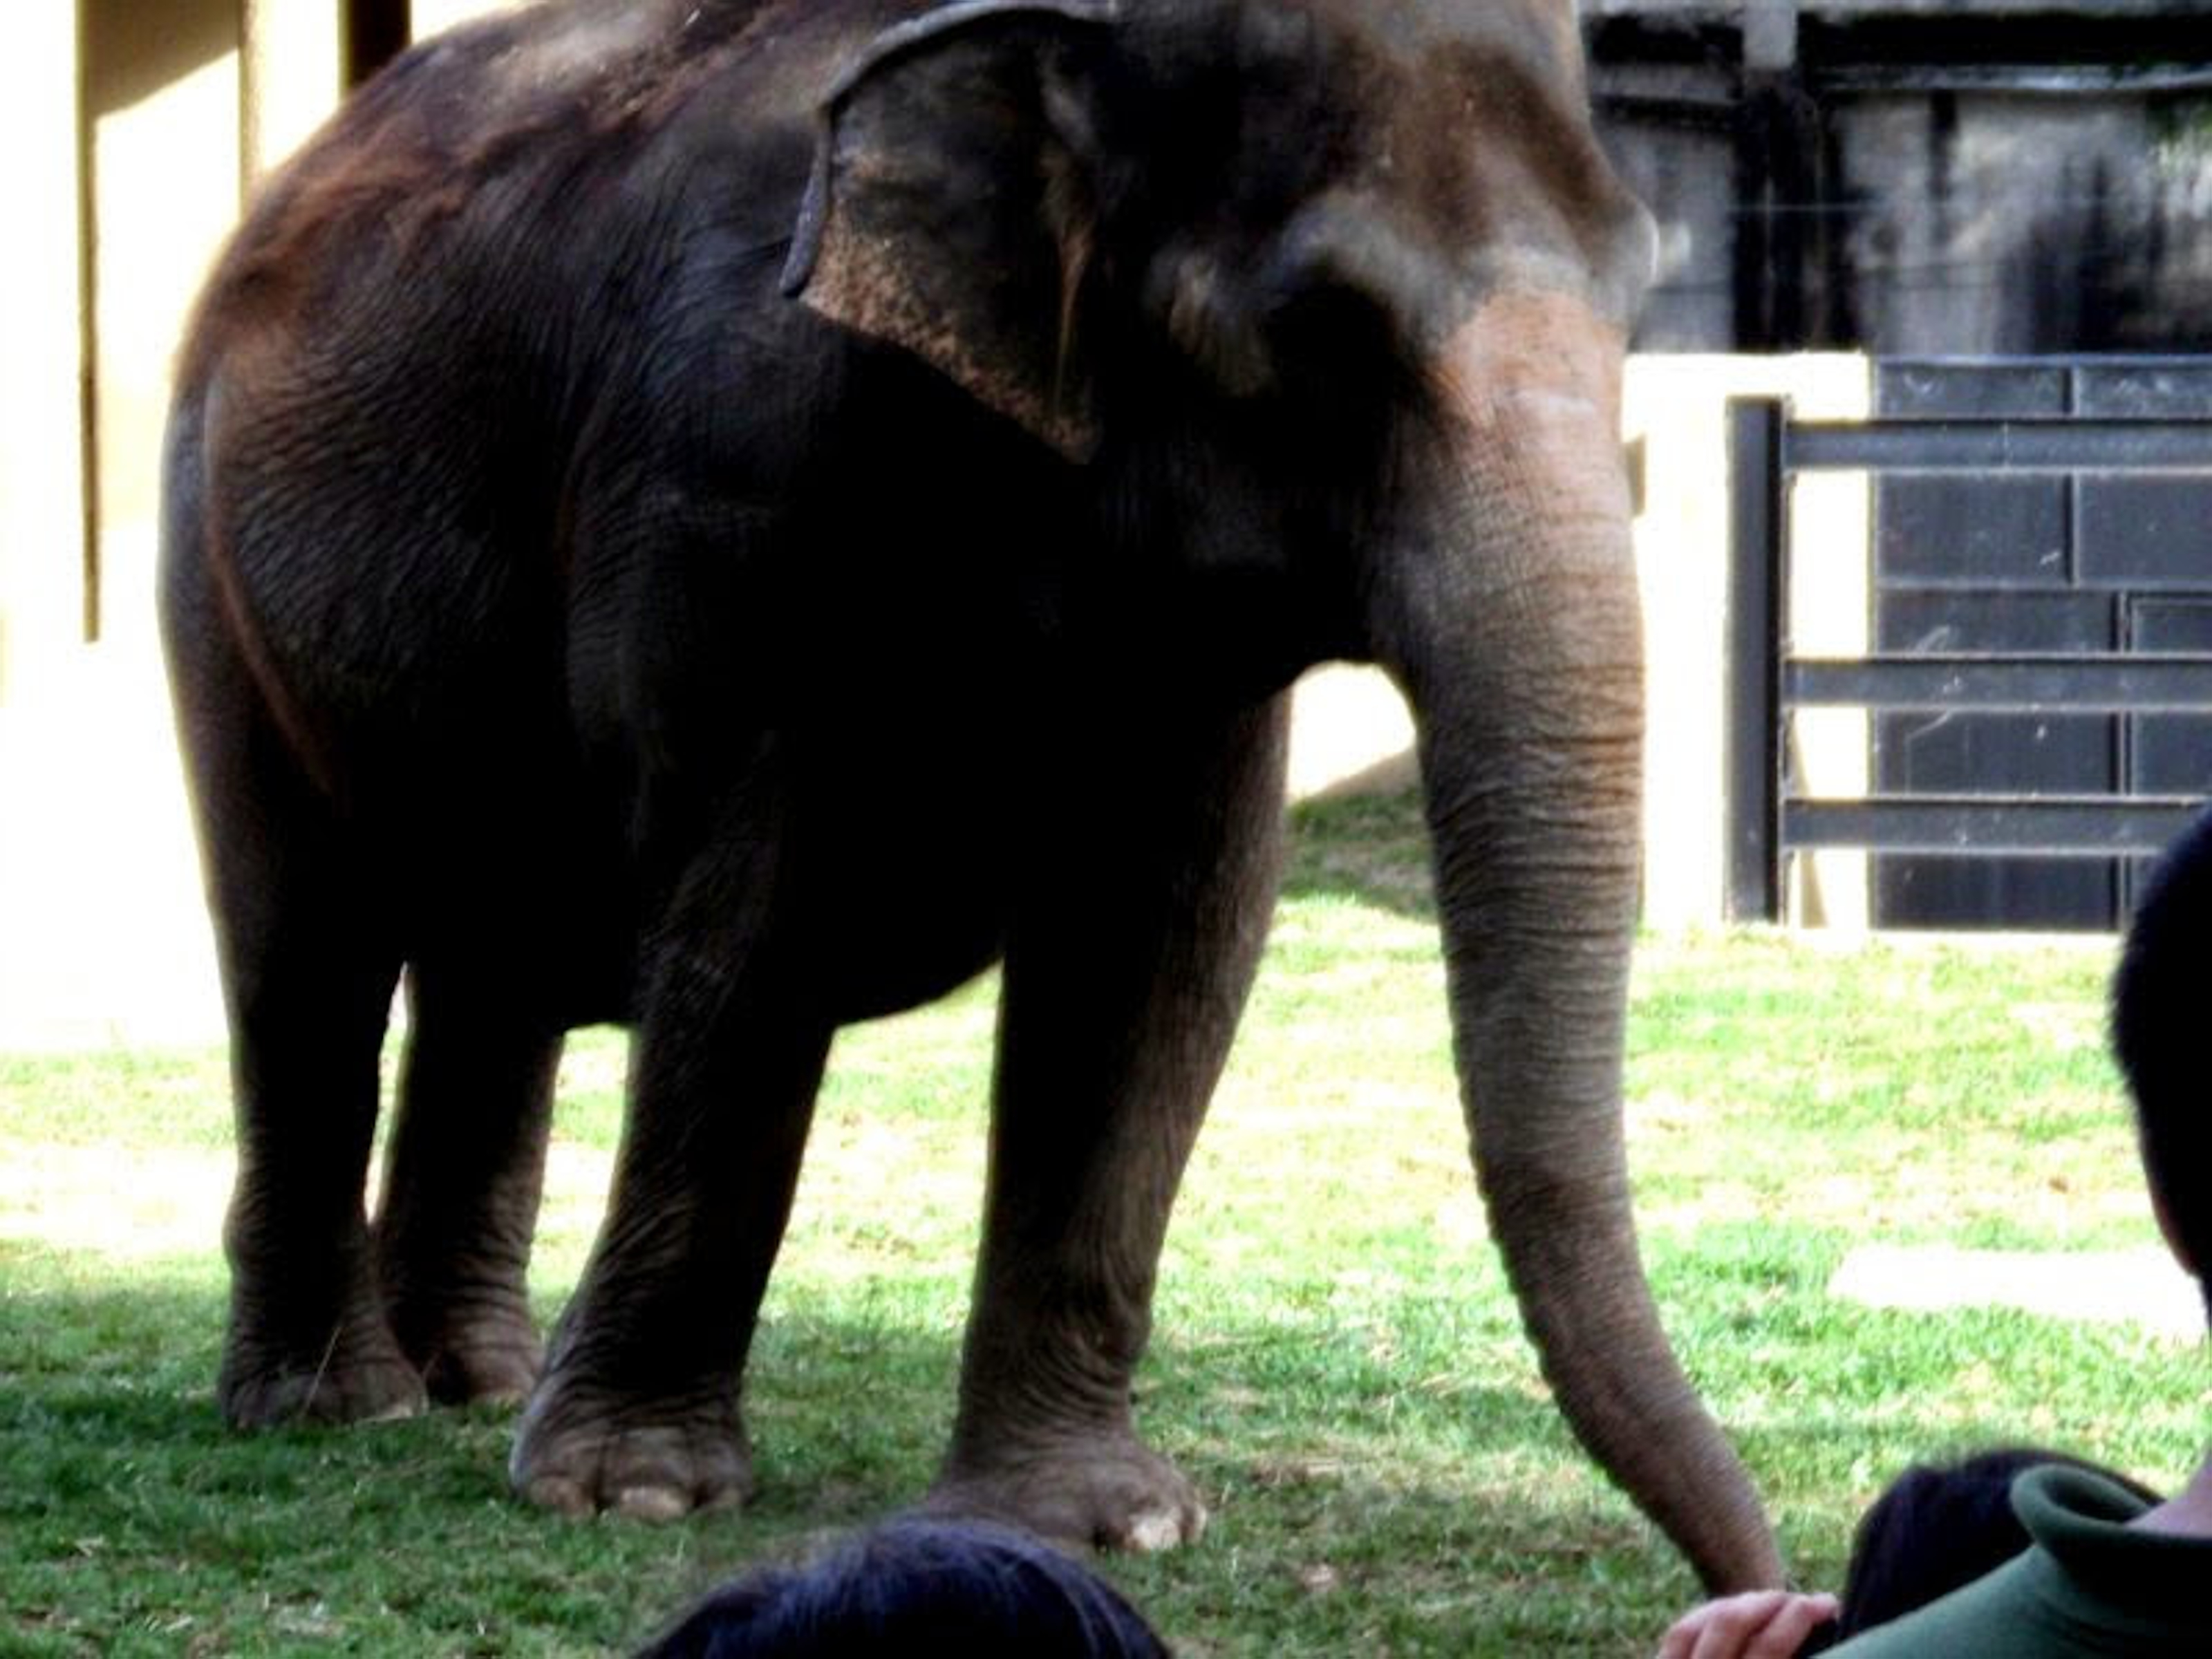 Free photograph; elephant, zoo